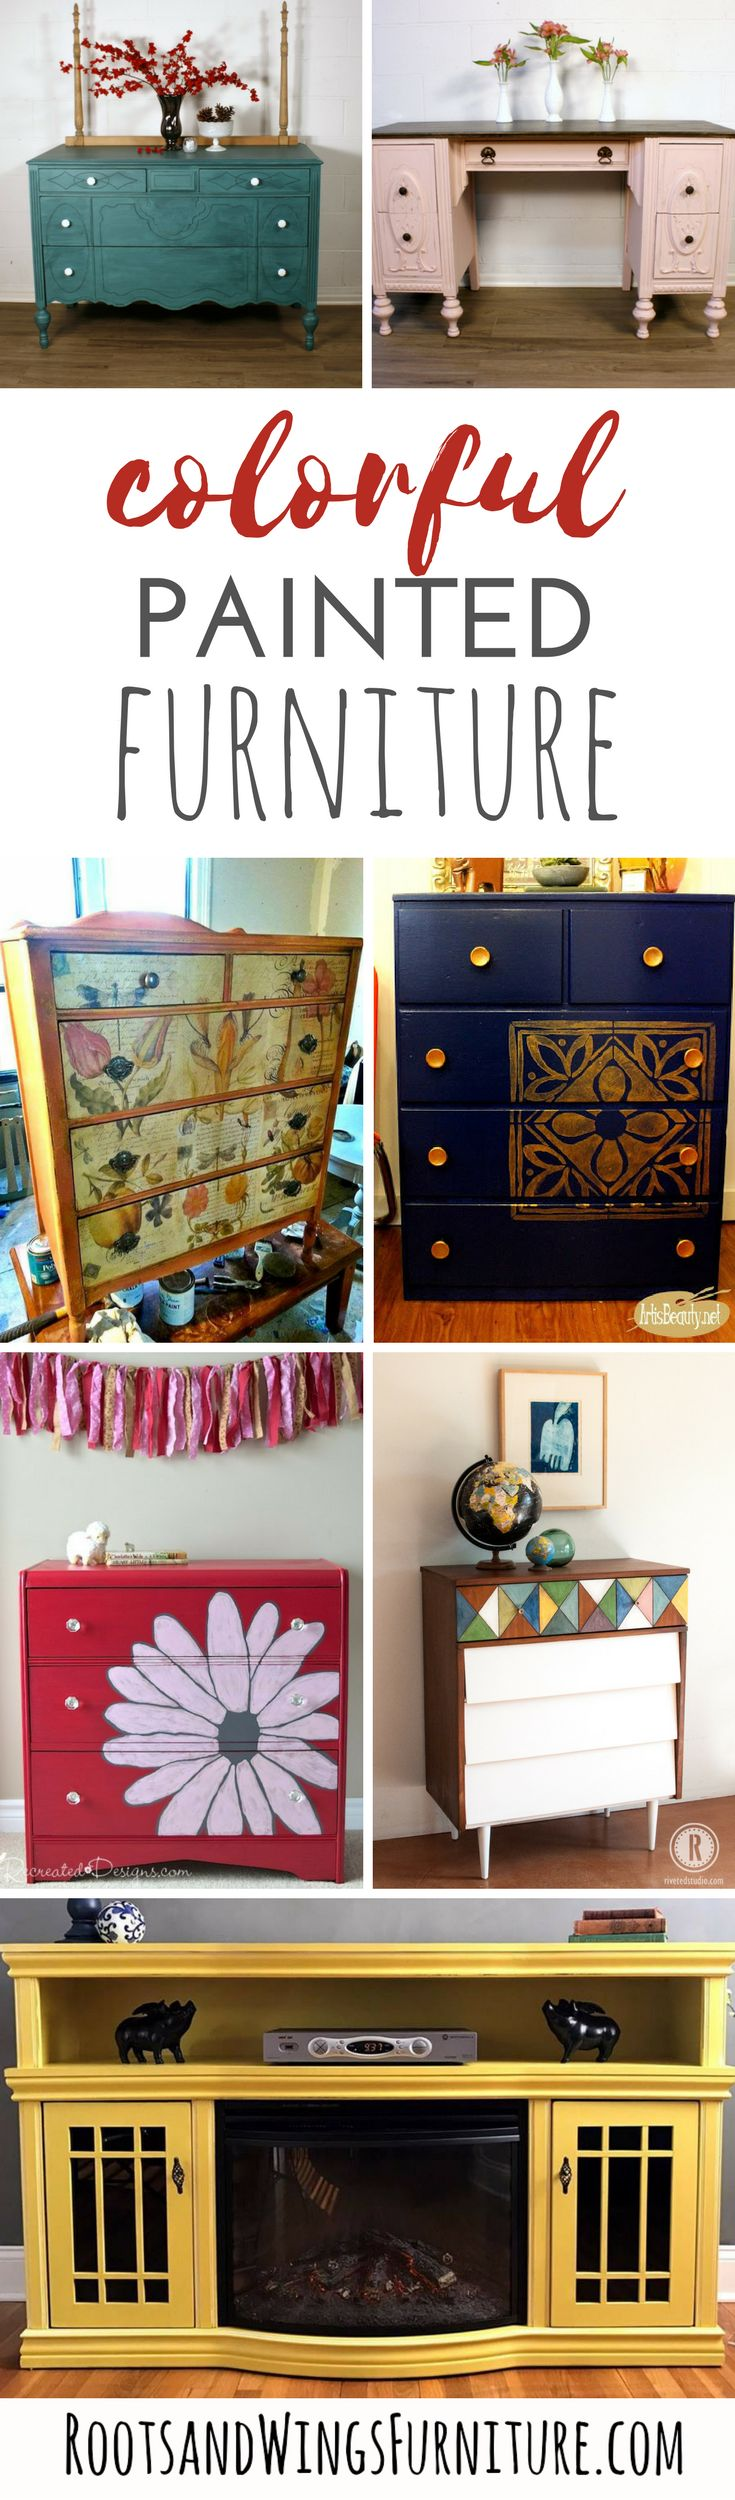 A collection of colorful painted pieces by some of the top furniture refinishers! Find color inspiration with these painted pieces. Round up by Jenni of Roots and Wings Furniture.